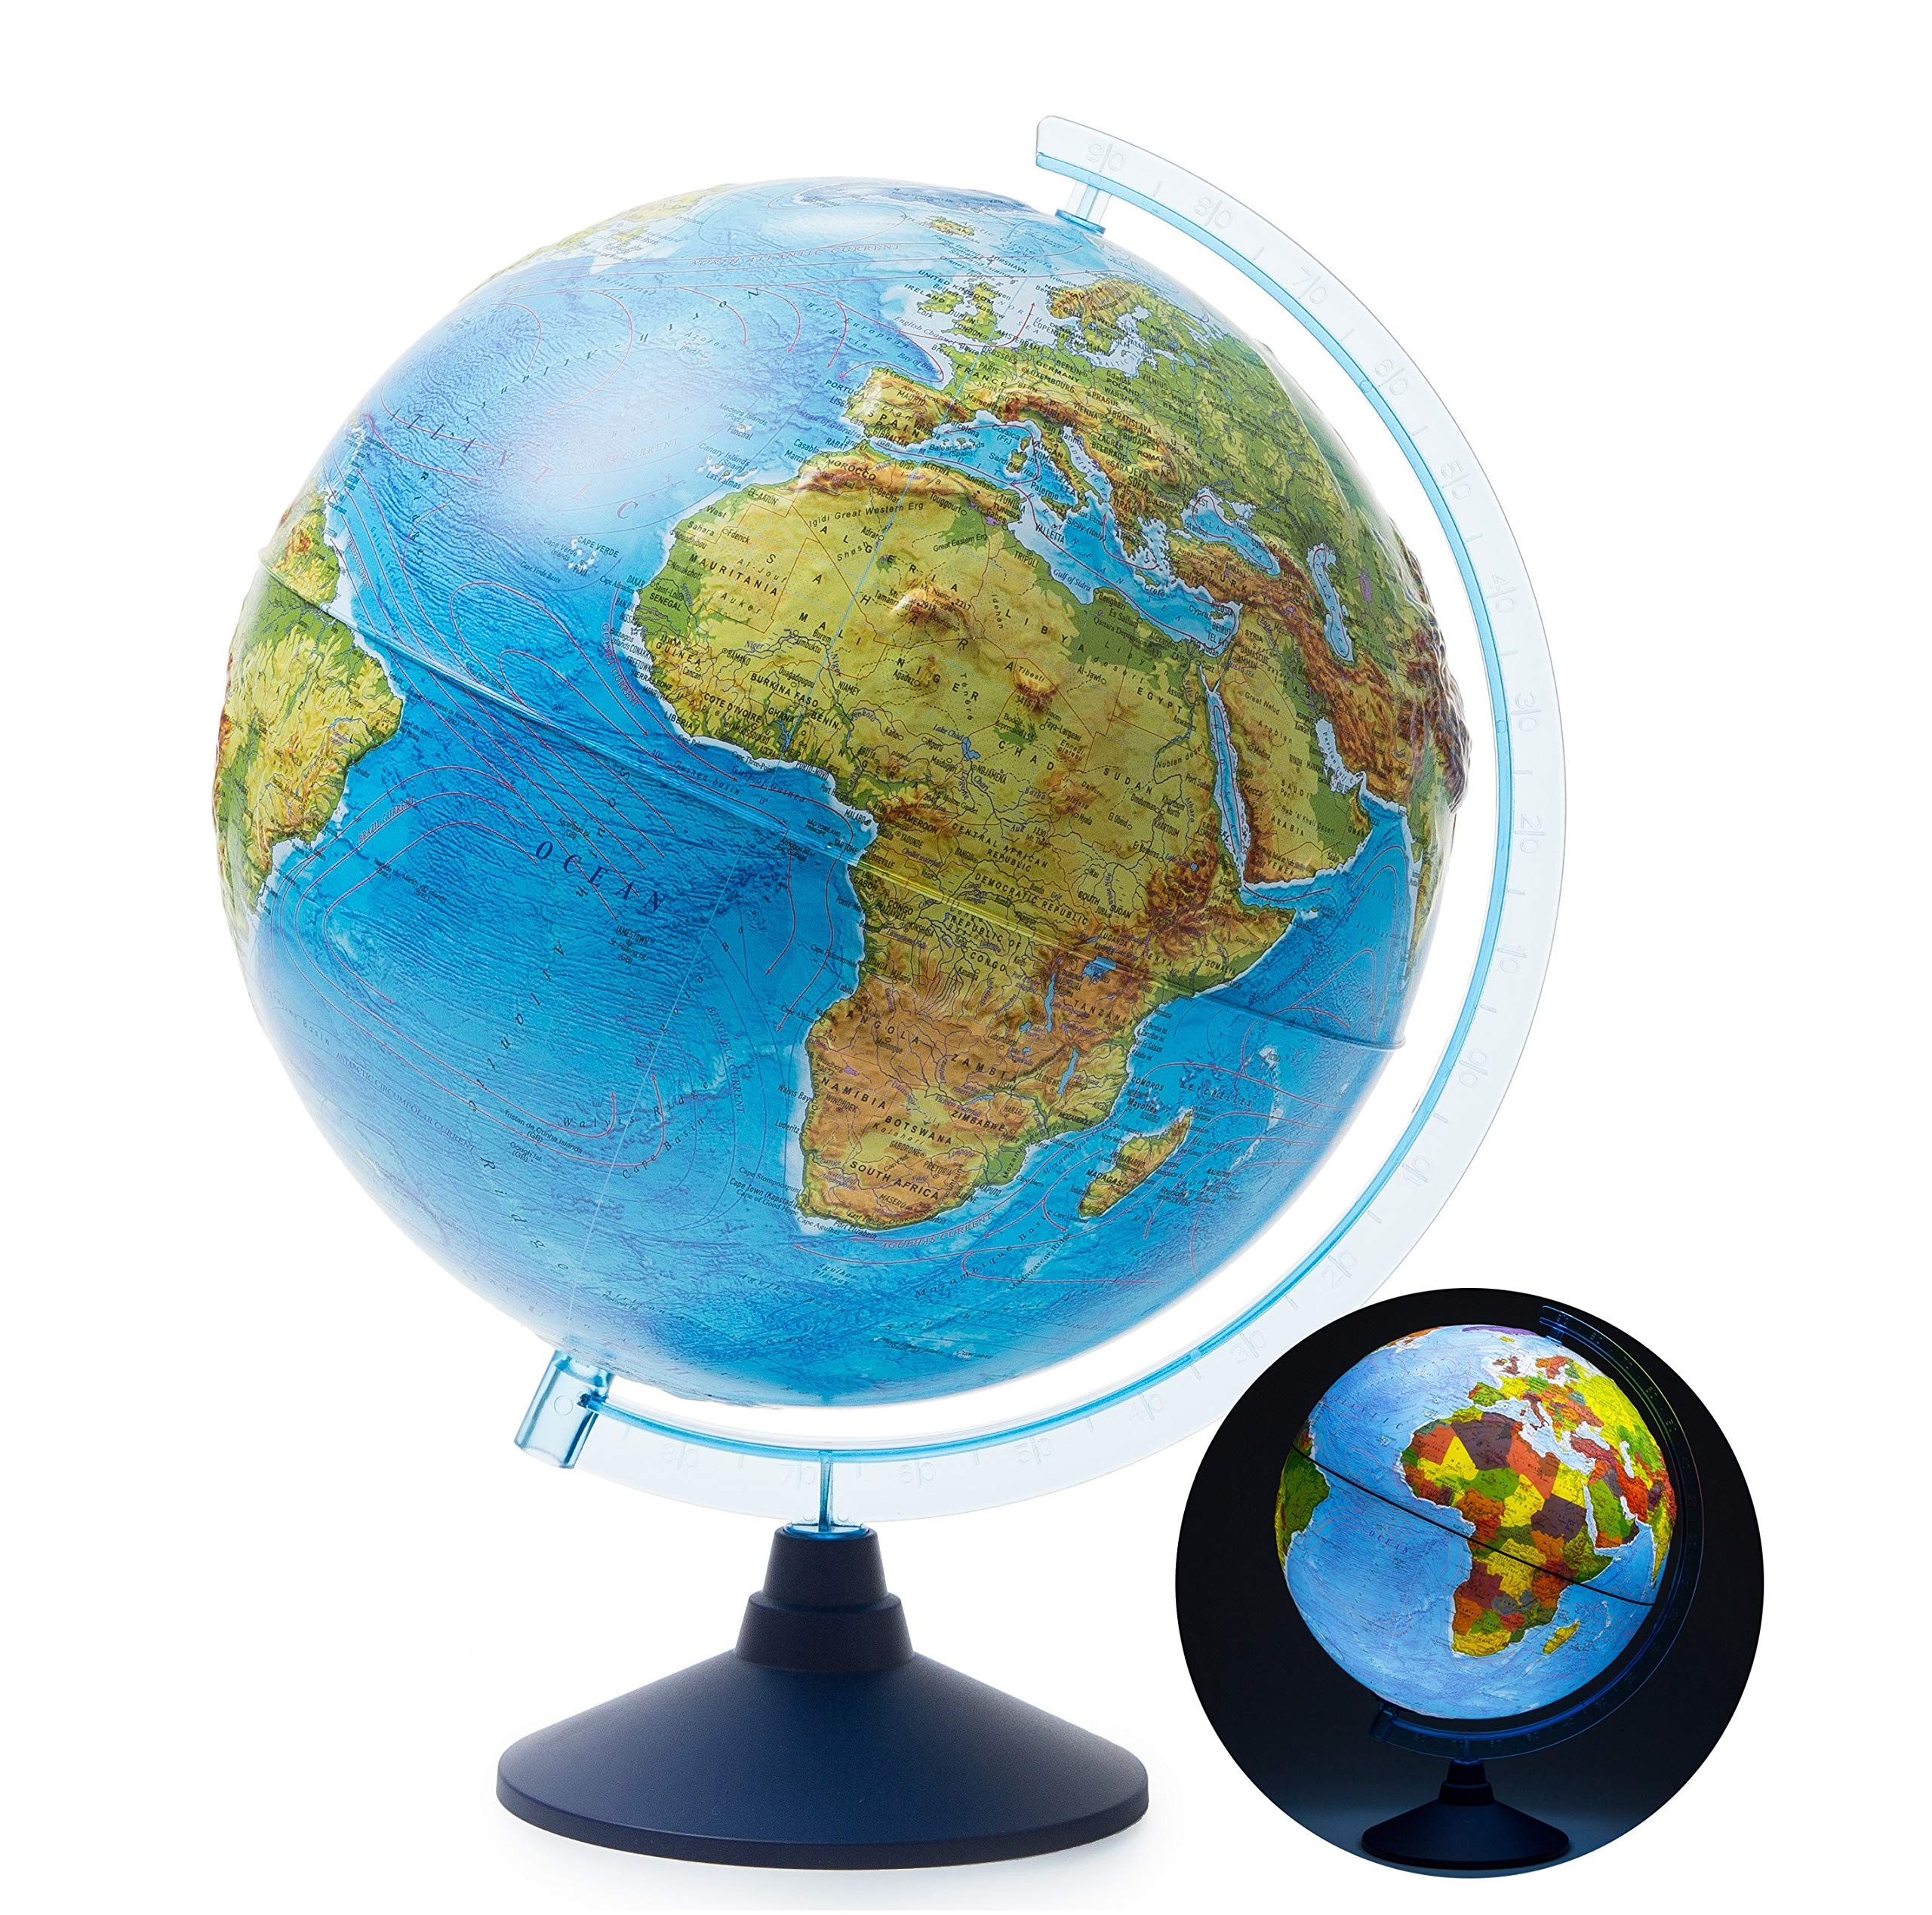 EXERZ 12'' / 13'' /32cm Illuminated Relief Globe with Cable Free LED Lighting/ 2 in 1/ Day and Night - Physical/Political Dual Map - Topography / Geography / Ridge by Exerz